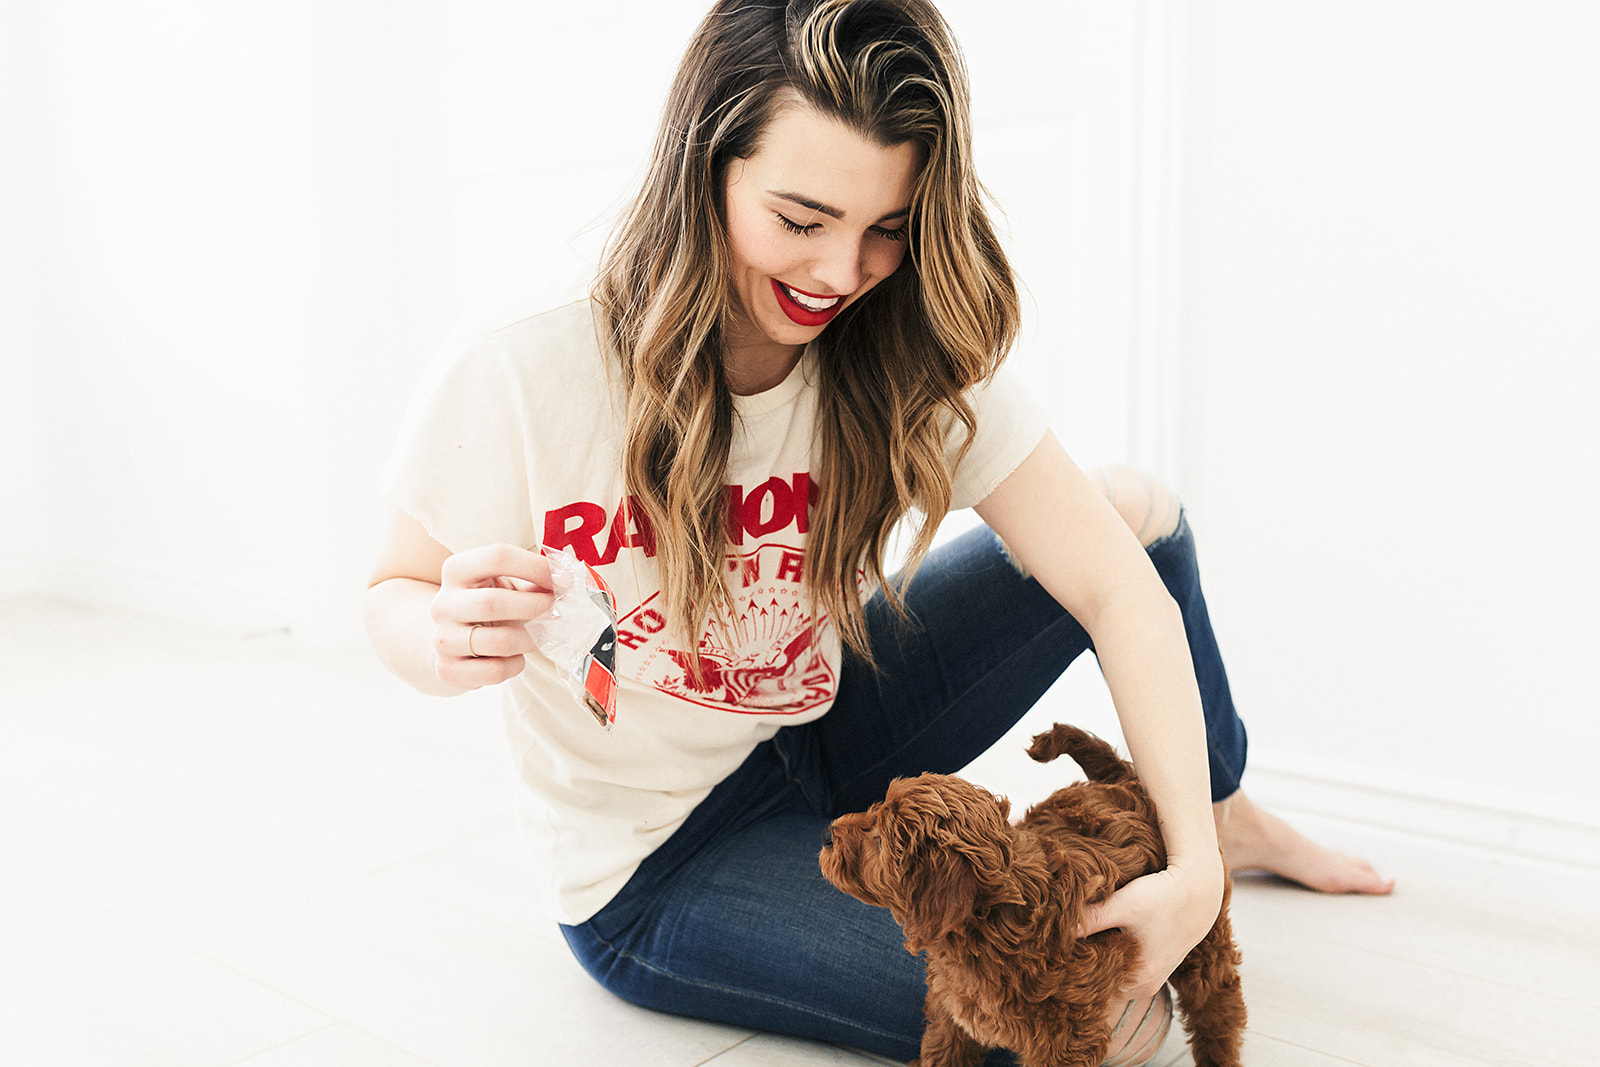 Becca Robson with her puppy